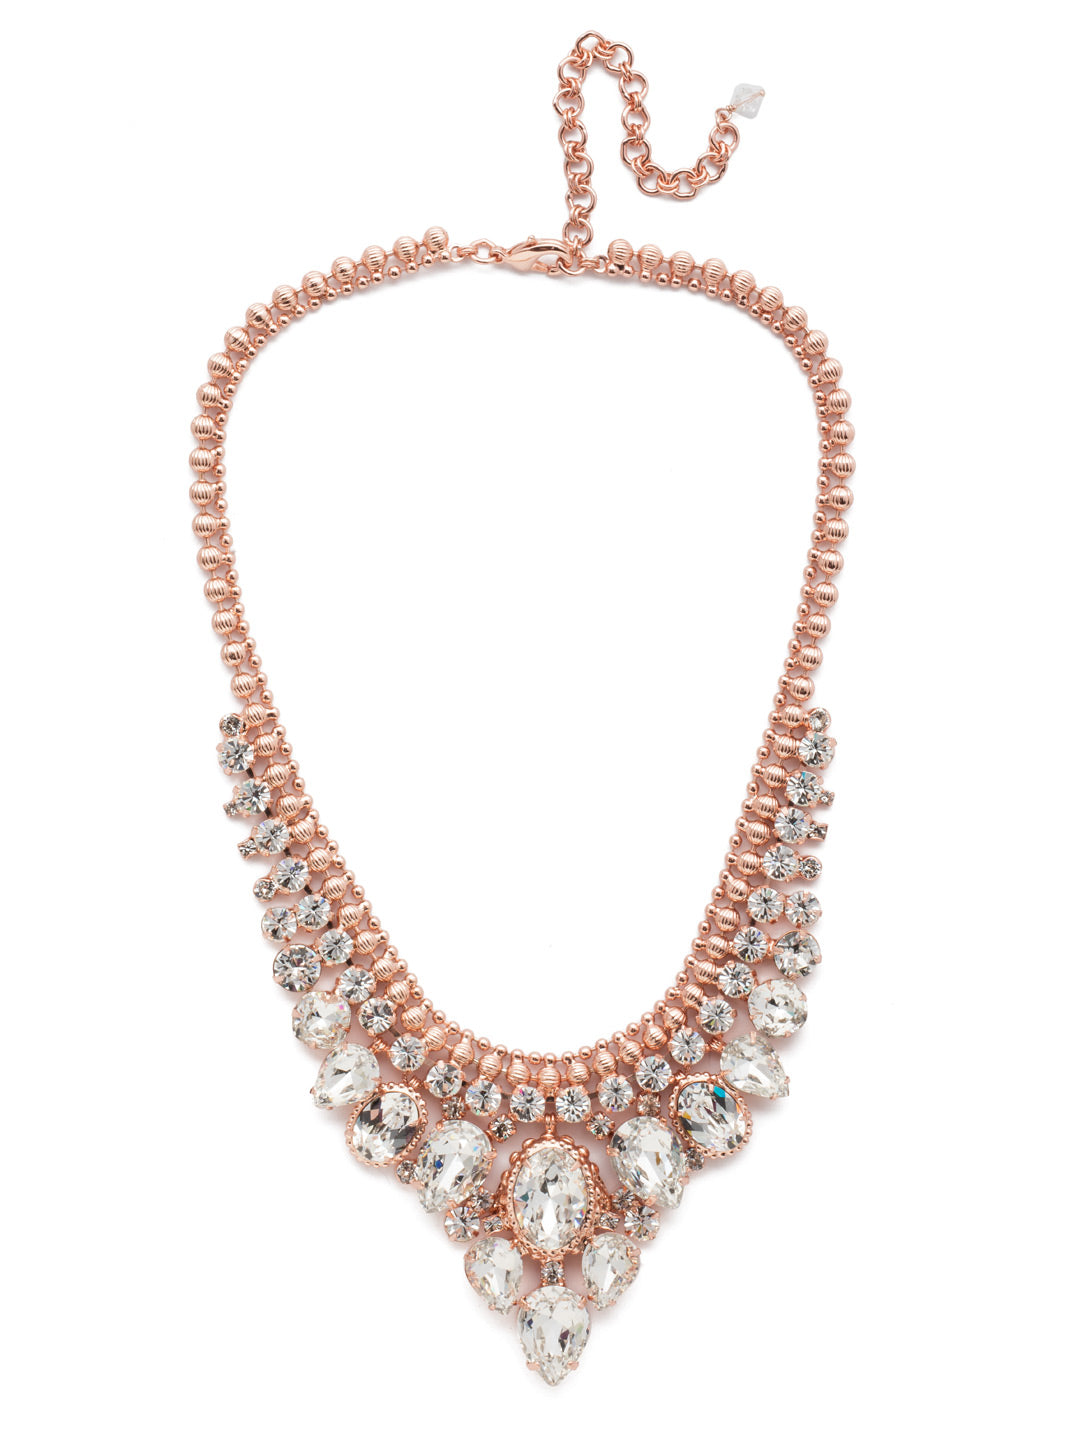 Protea Statement Statement Necklace - NDQ3RGCRY